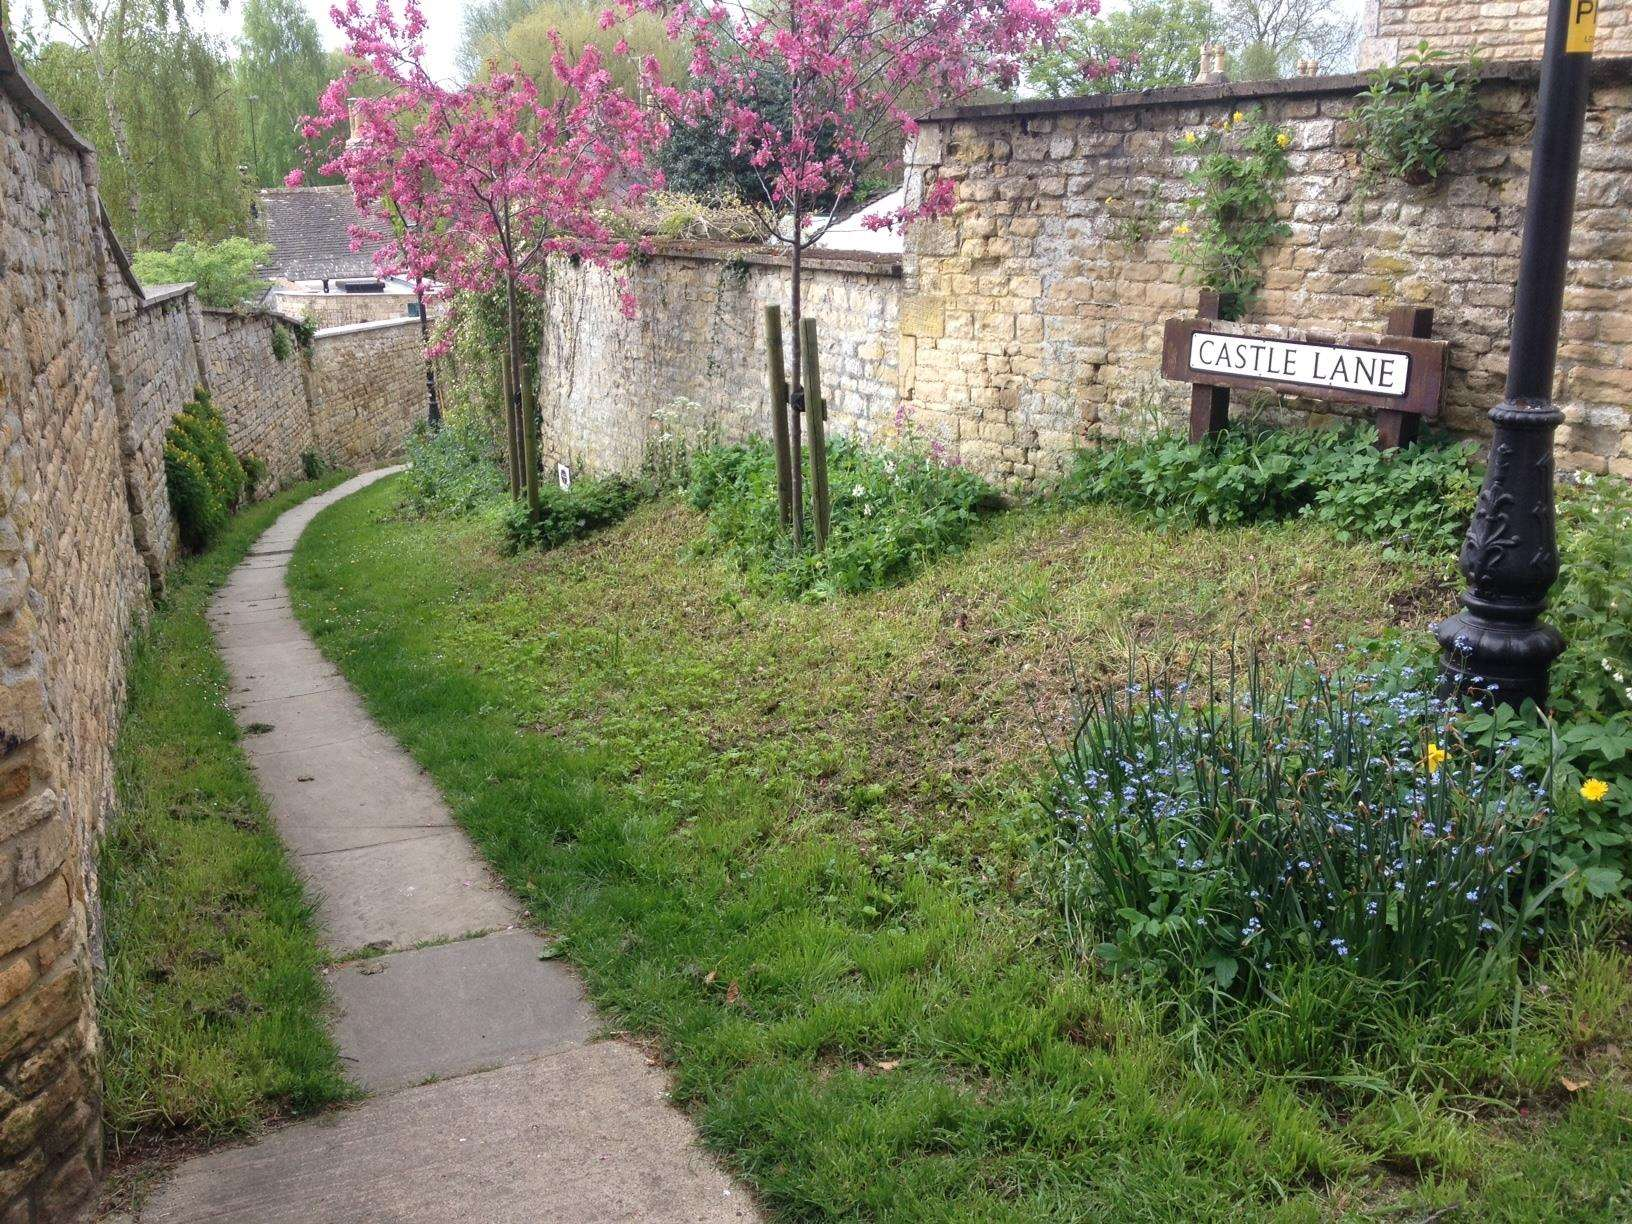 Castle Lane in Stamford where the wildflowers were cut. Photo: Andrew Stone